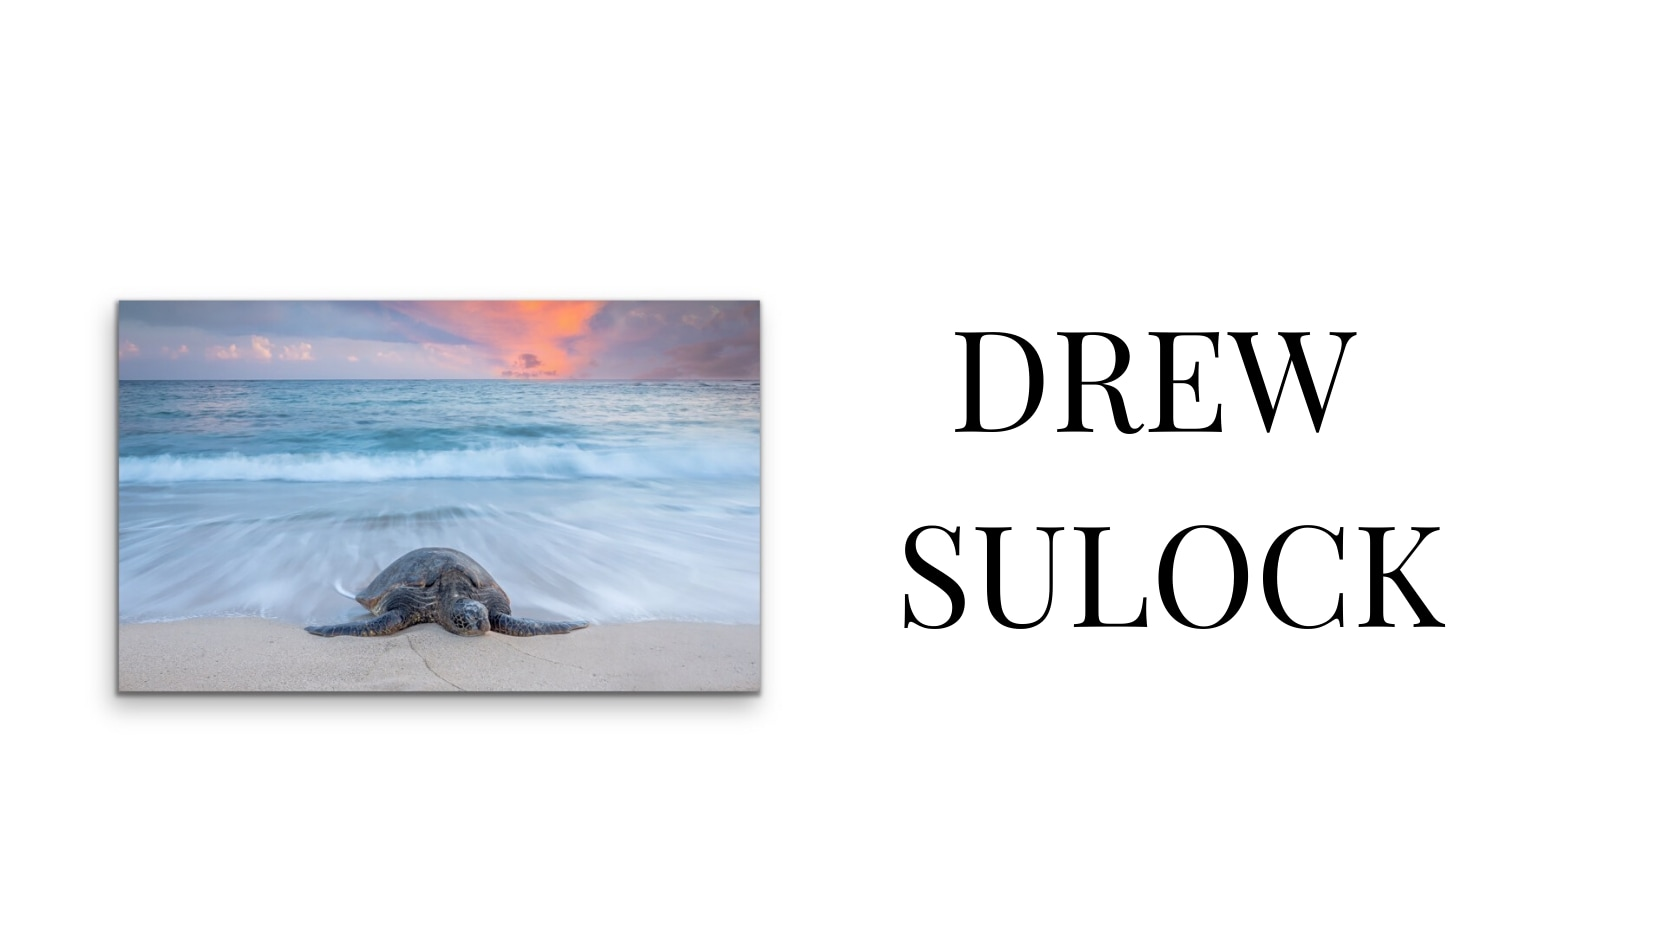 <div class='title'>           Evo Art Maui Artist Front Street Lahaina Gallery Classical Surreal Contemporary Abstract Bears Dolphins Whales Sculpture Metaphorical Vladimir Kush Lassen Provenza Parkes Bond Banovich Landscape Hawaii44         </div>